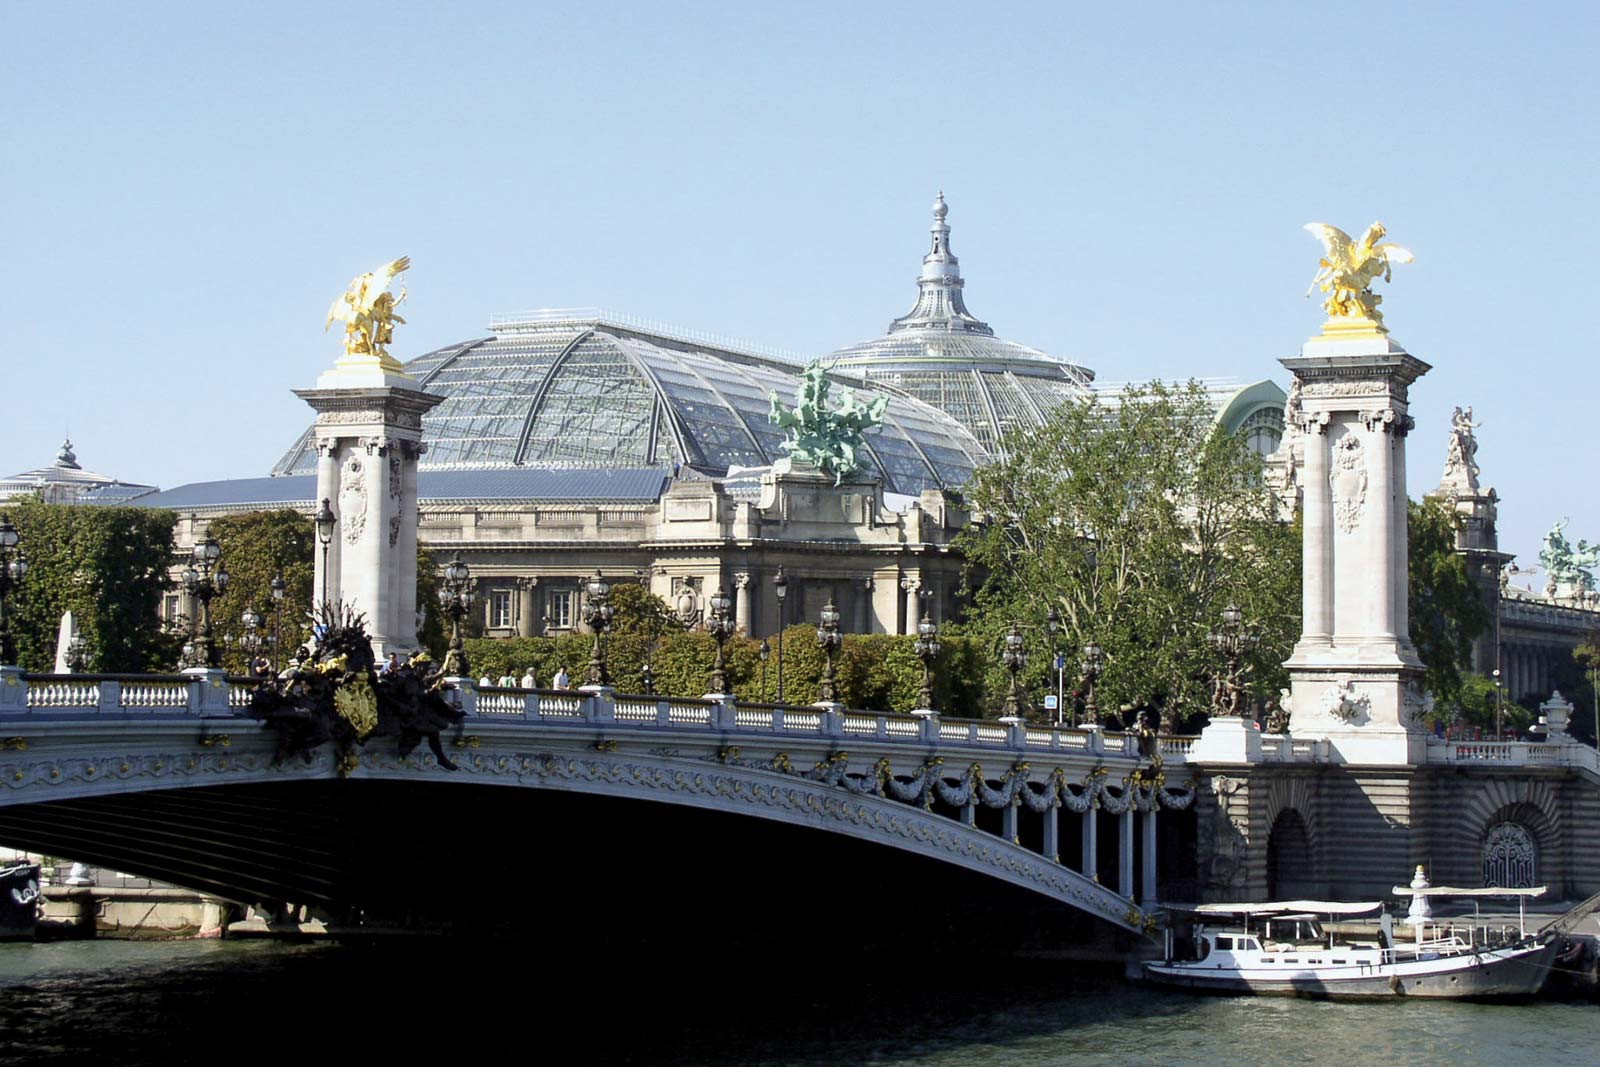 Paris 2024 still plan to use iconic Grand Palais as doubts emerge over renovation plans